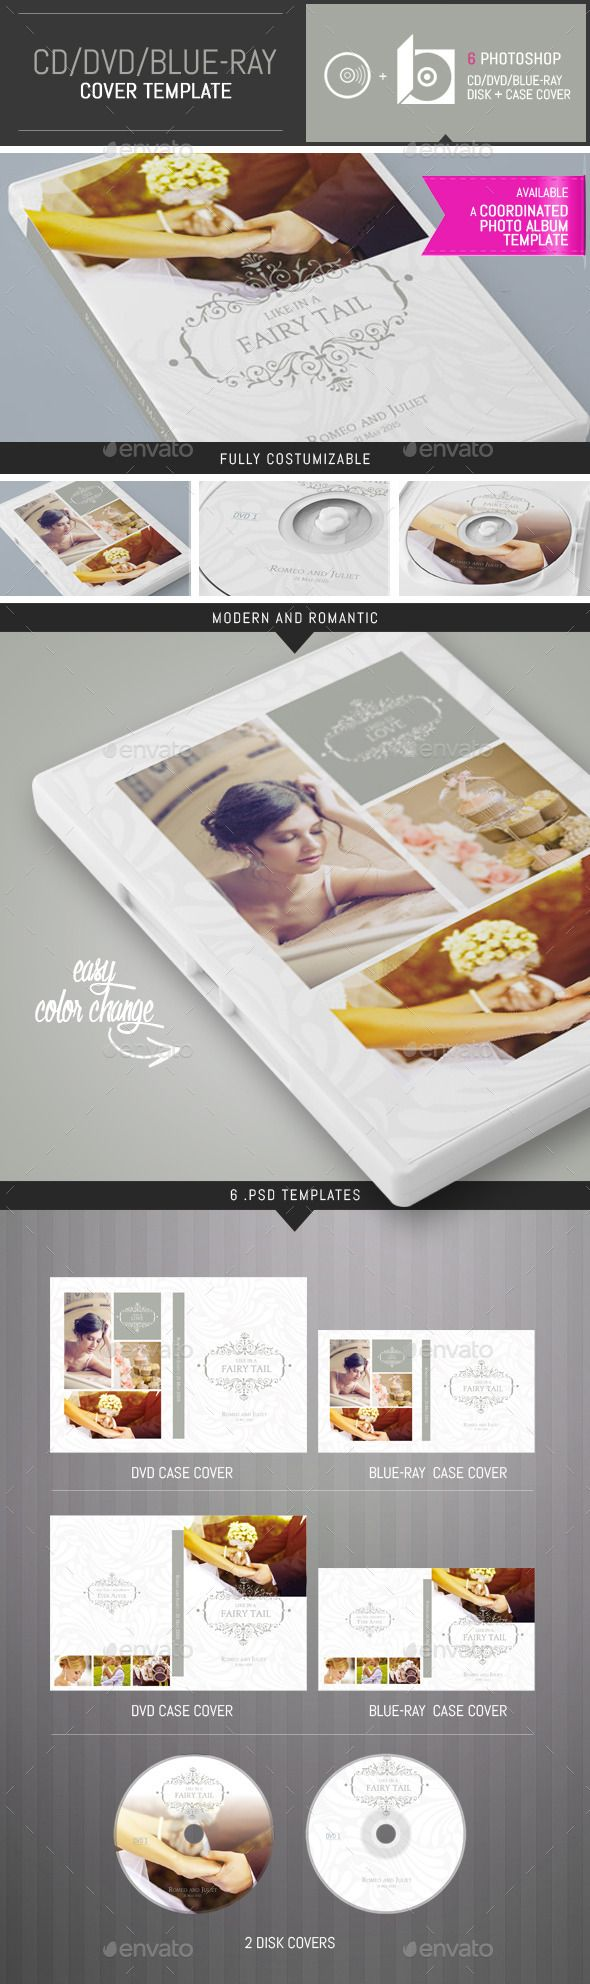 Elegant Wedding DVD / CD Cover Template — Photoshop PSD #baby shower #fashion • Available here → https://graphicriver.net/item/elegant-wedding-dvd-cd-cover-template/9693368?ref=pxcr